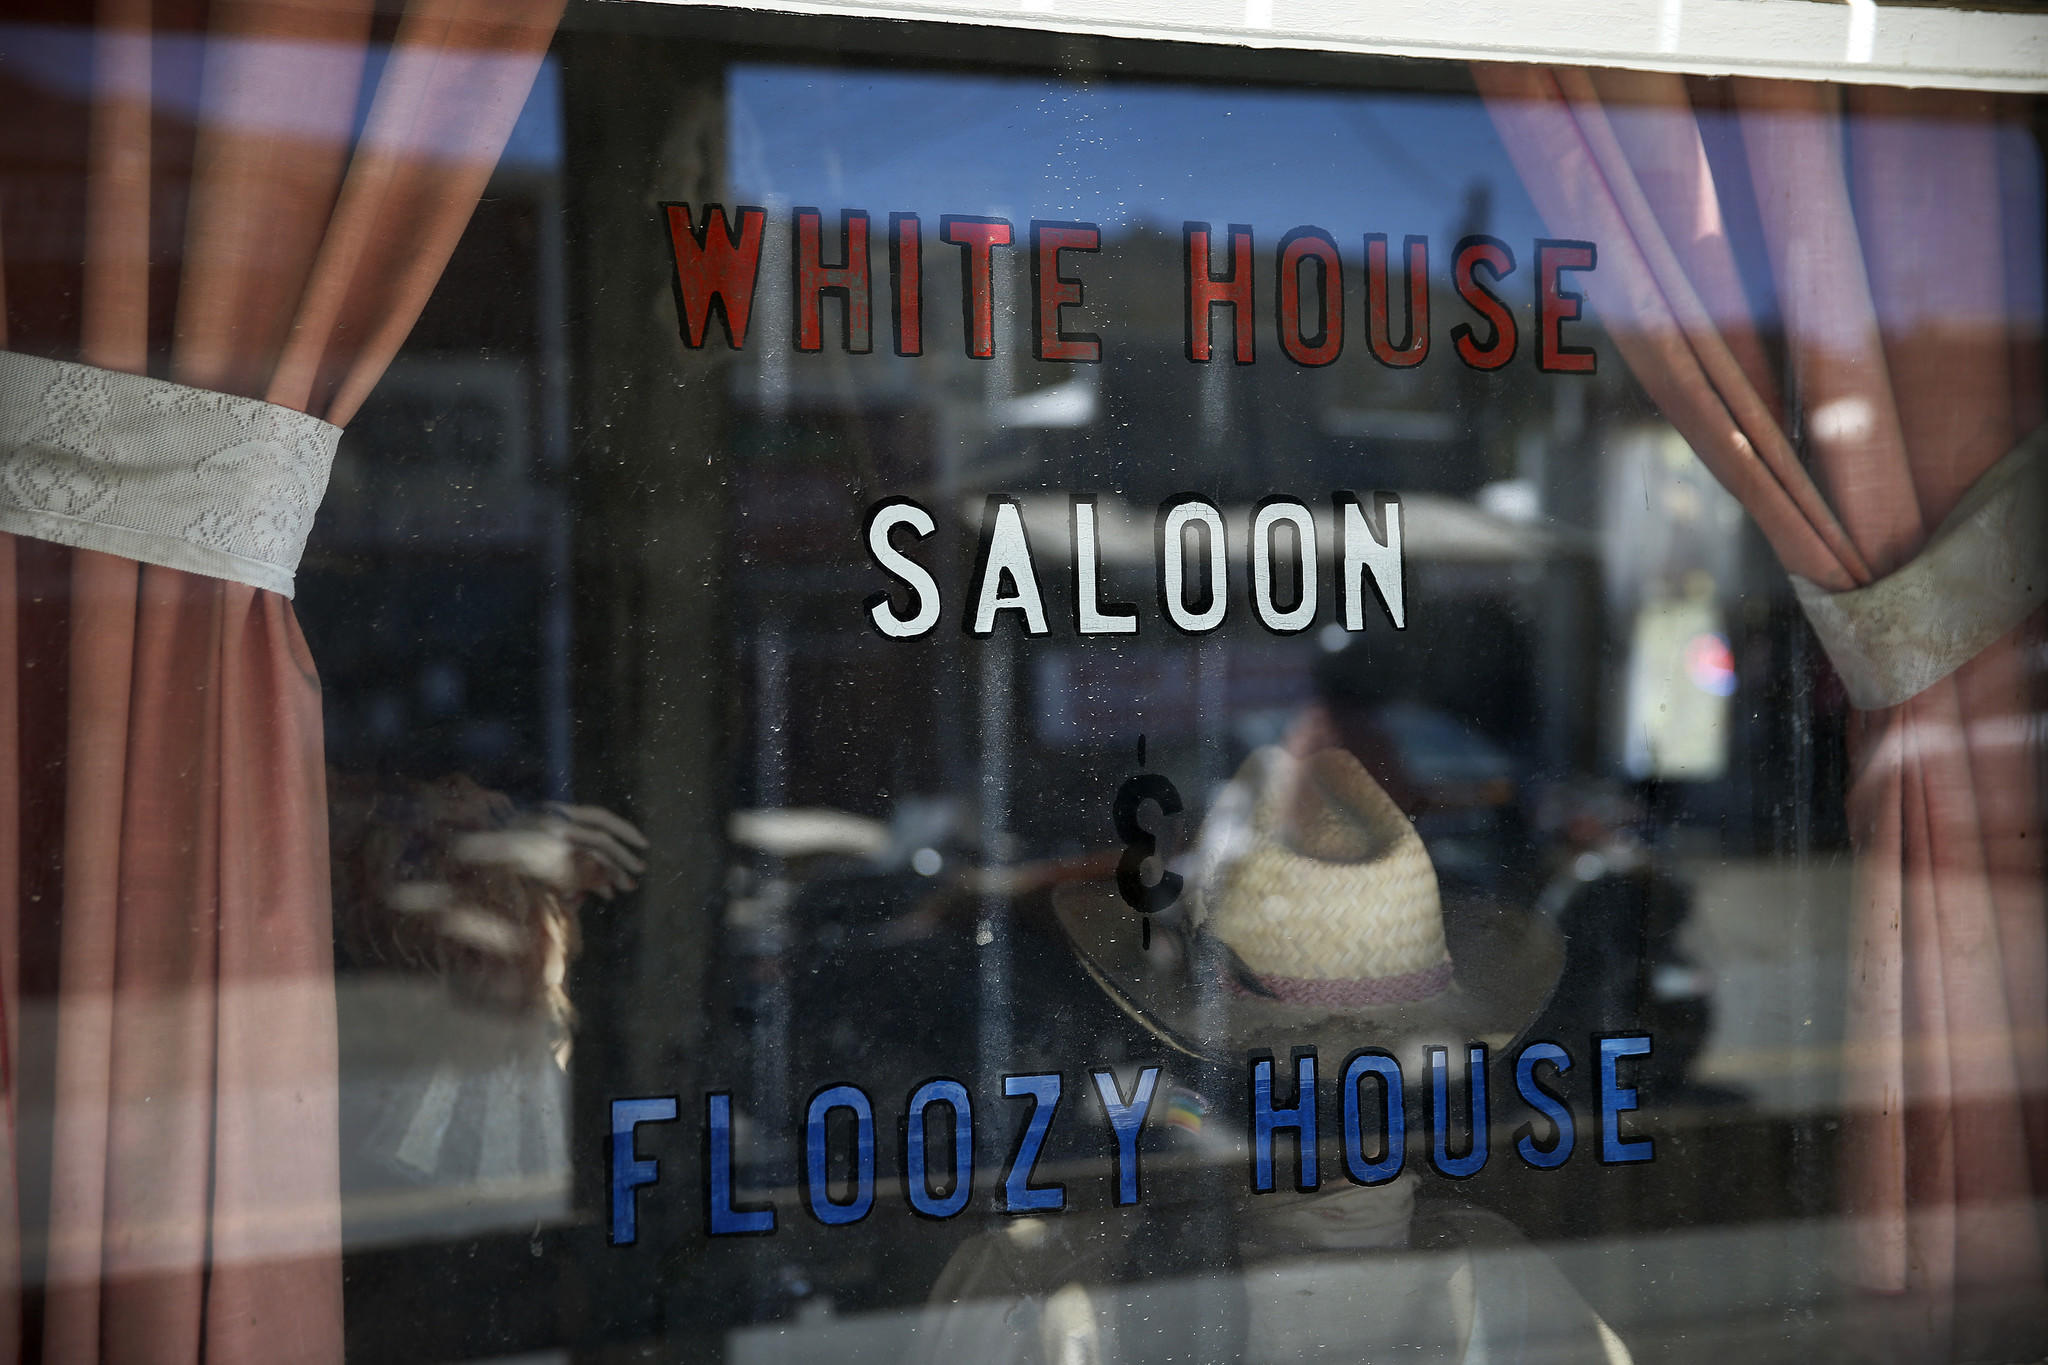 A view of the window display at the White House Saloon in downtown Randsburg.